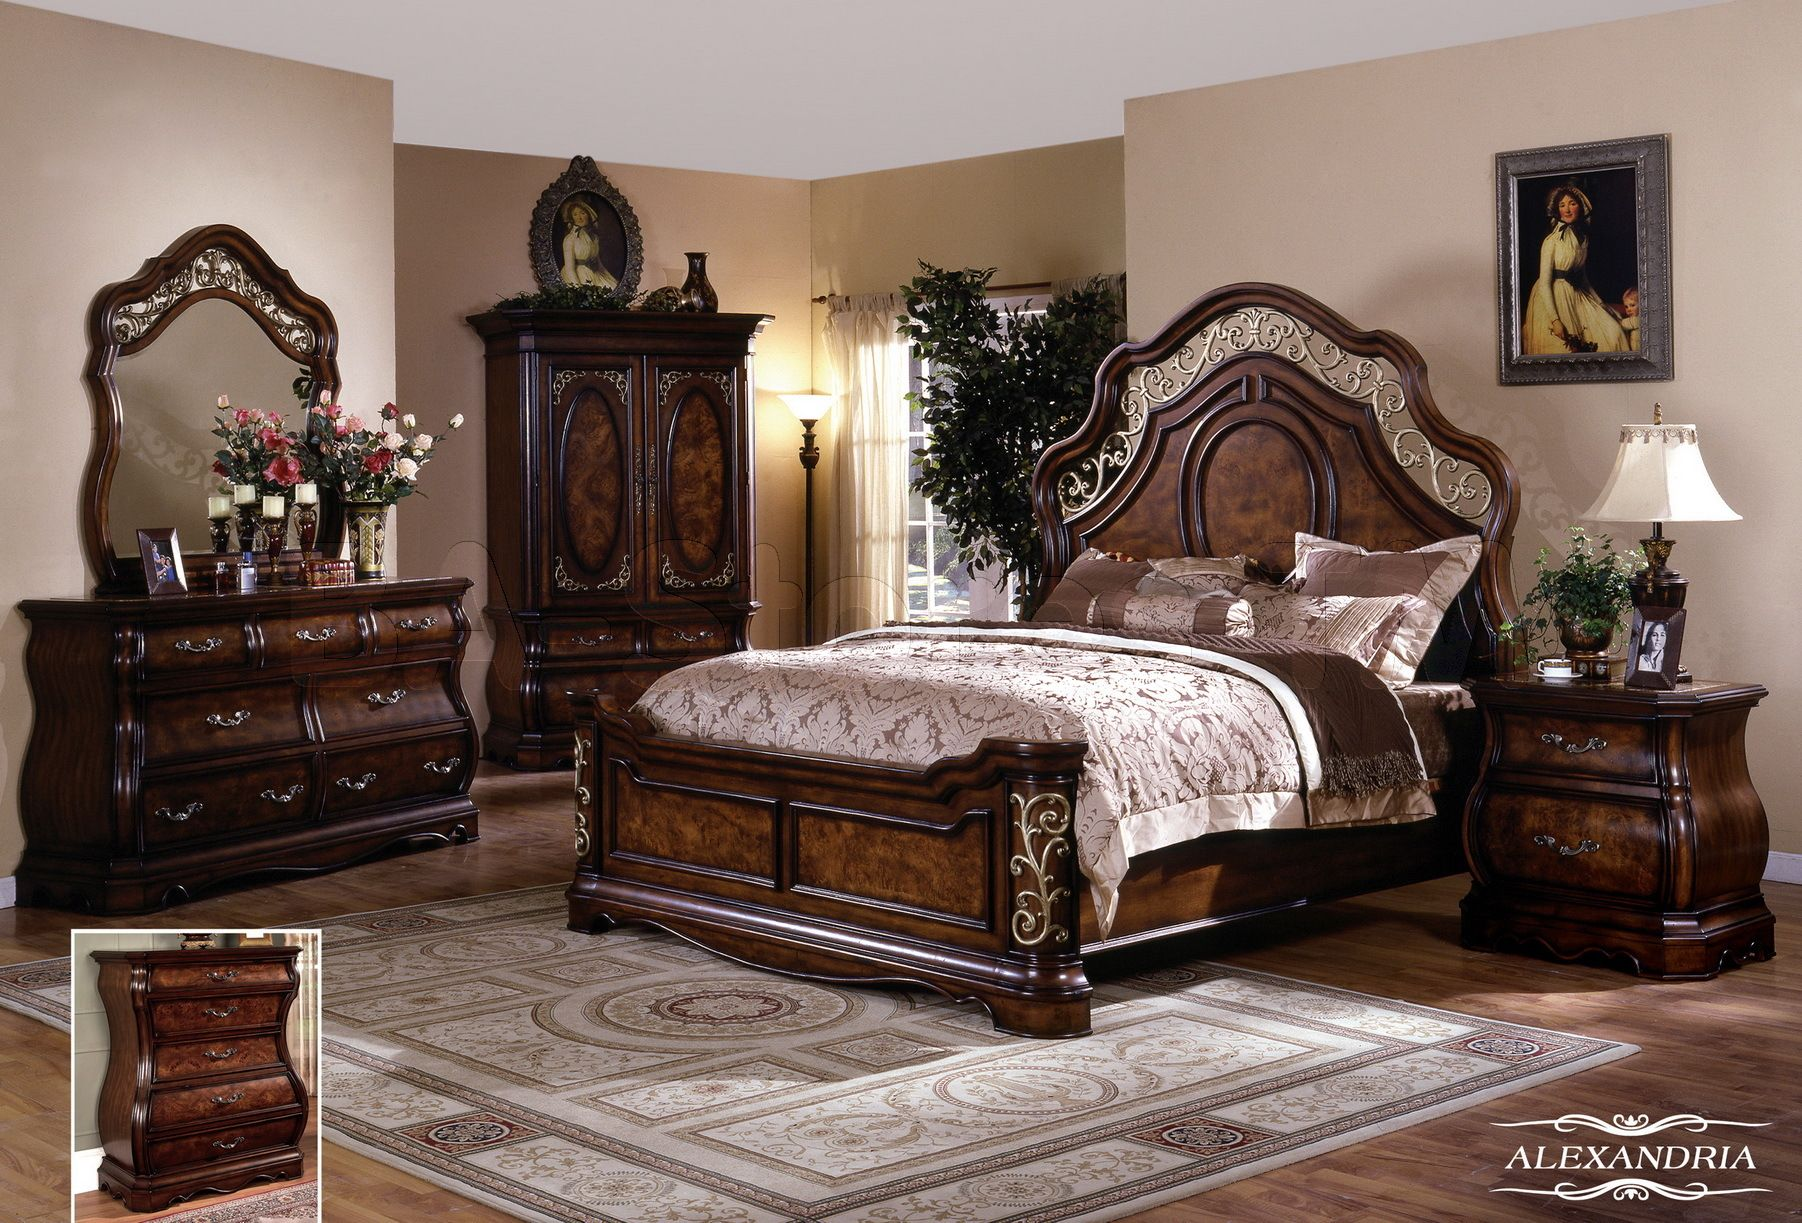 Alexandria 5 PC Bedroom Set (Queen Bed, Dresser, Mirror